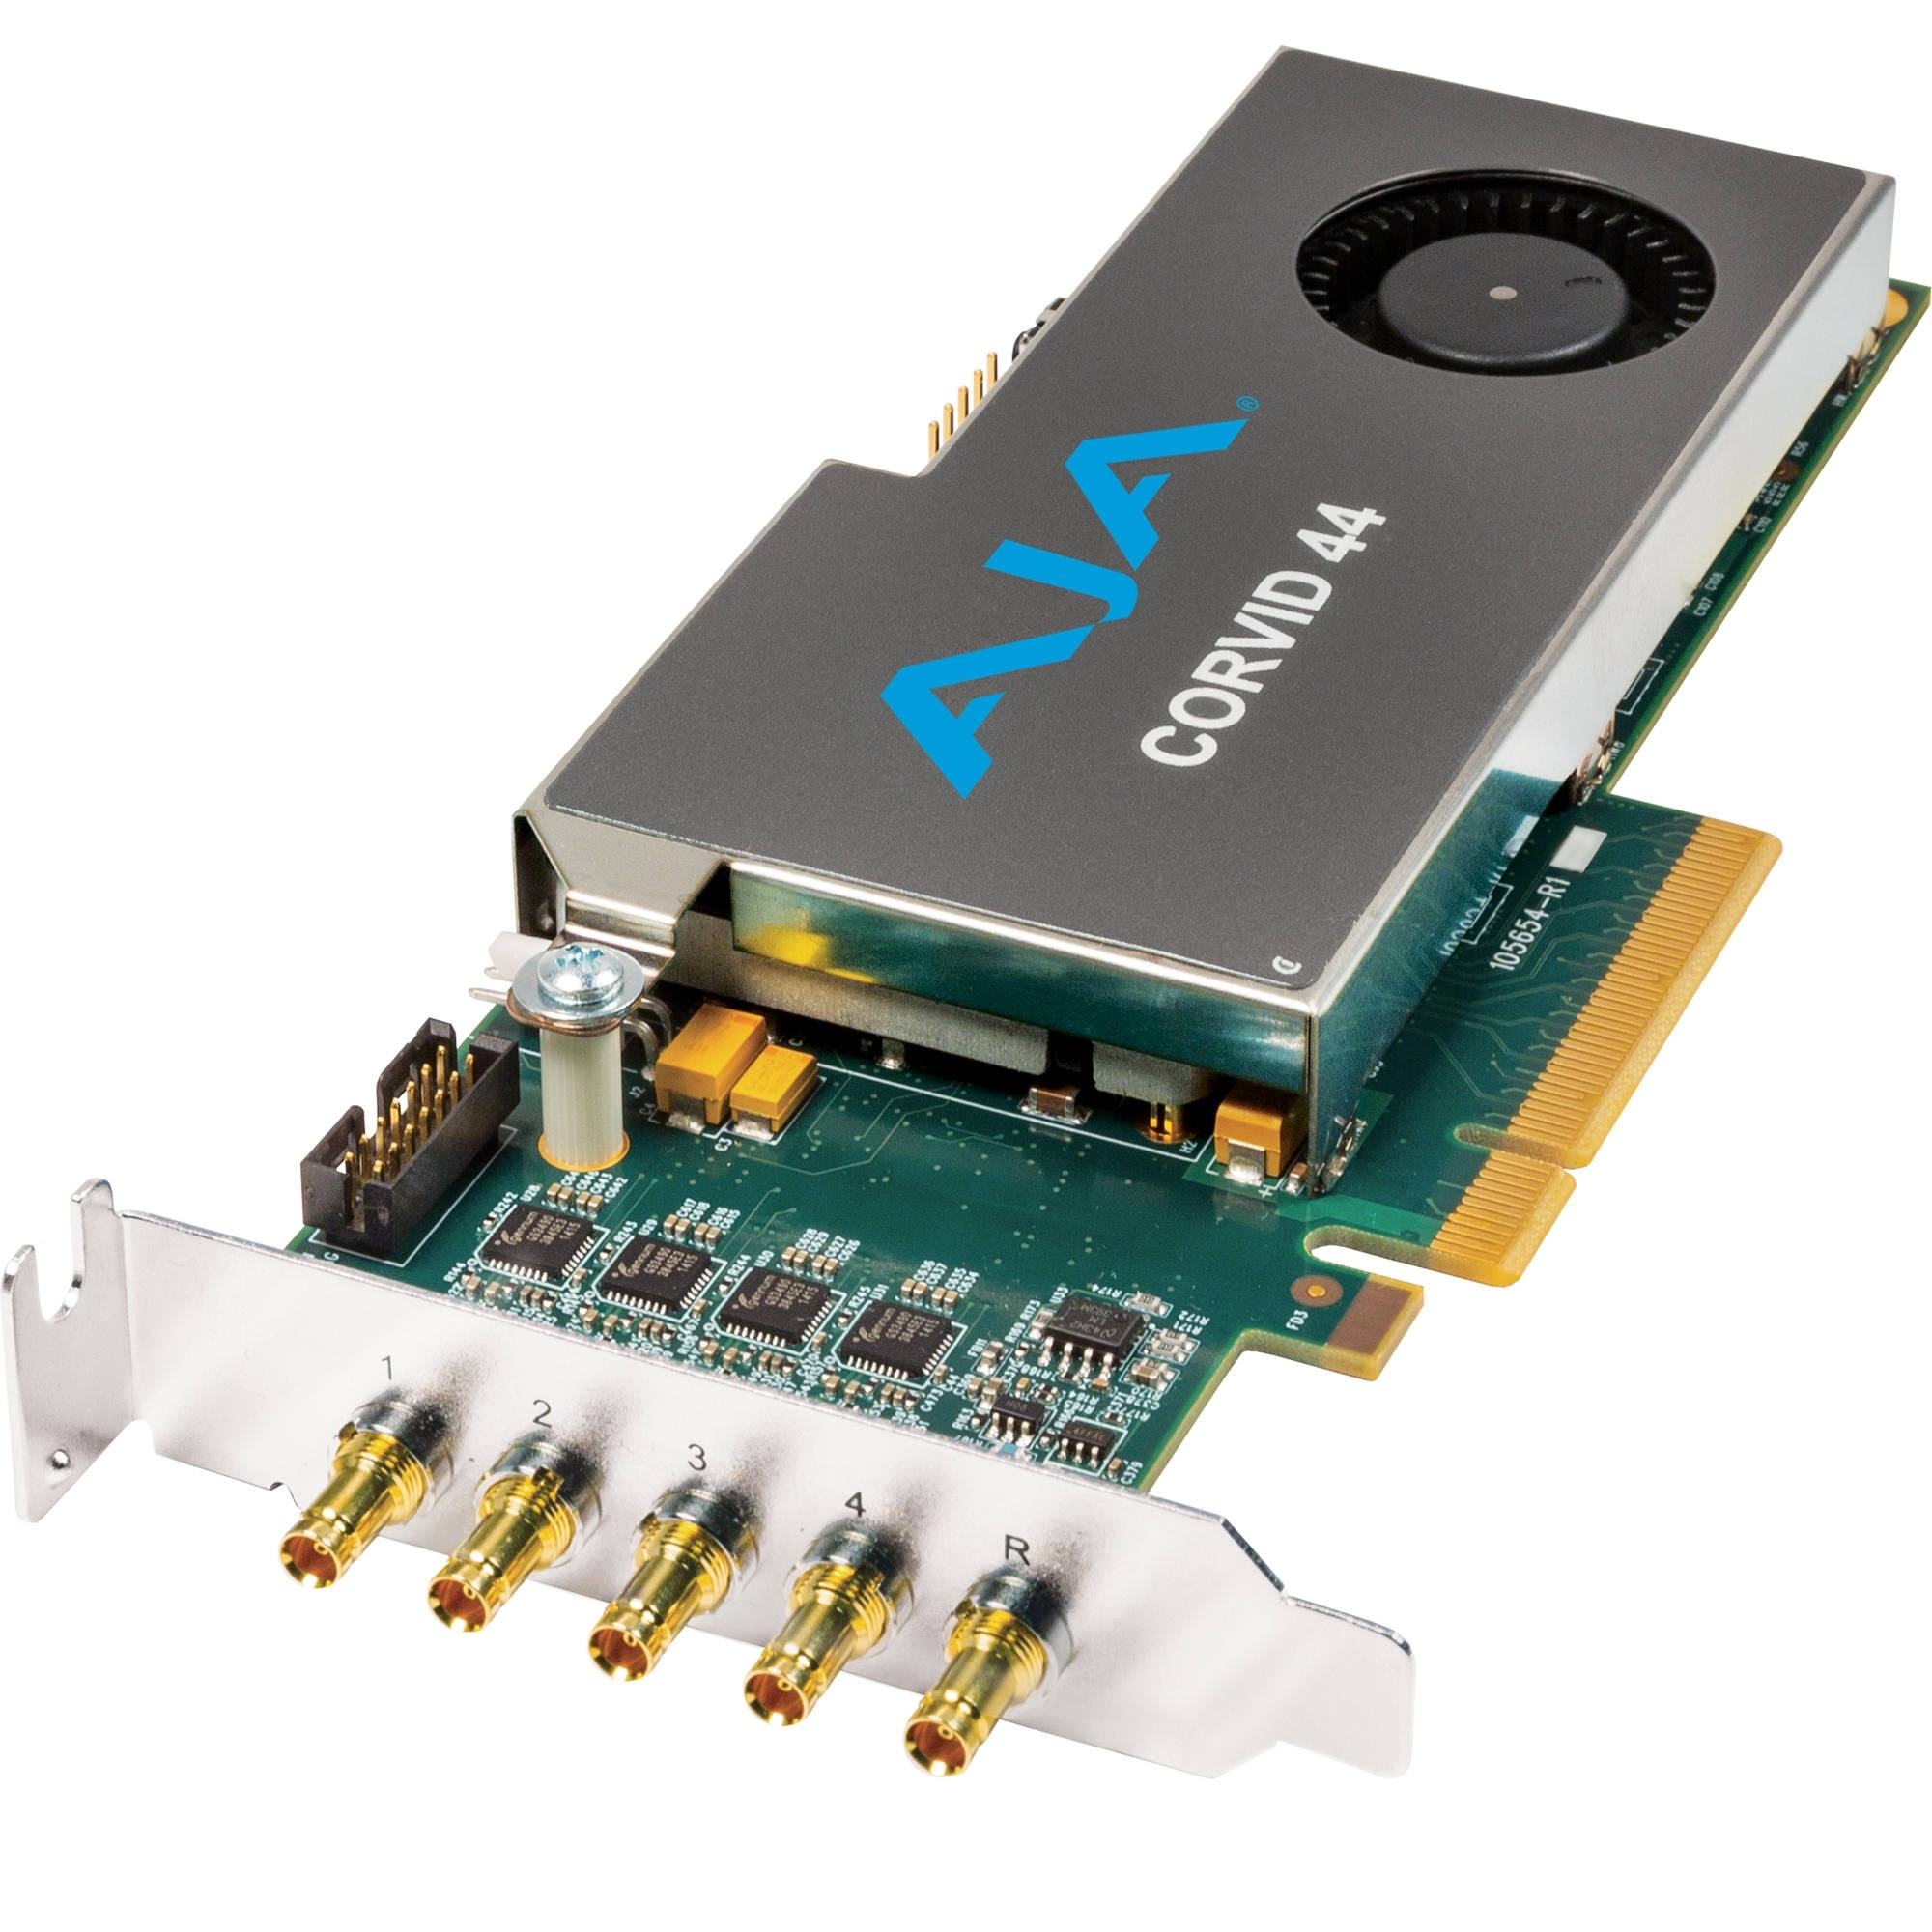 AJA CORVID 44 Low-Profile 8-Lane PCIe Express Gen 2.0 Card (No Cable)